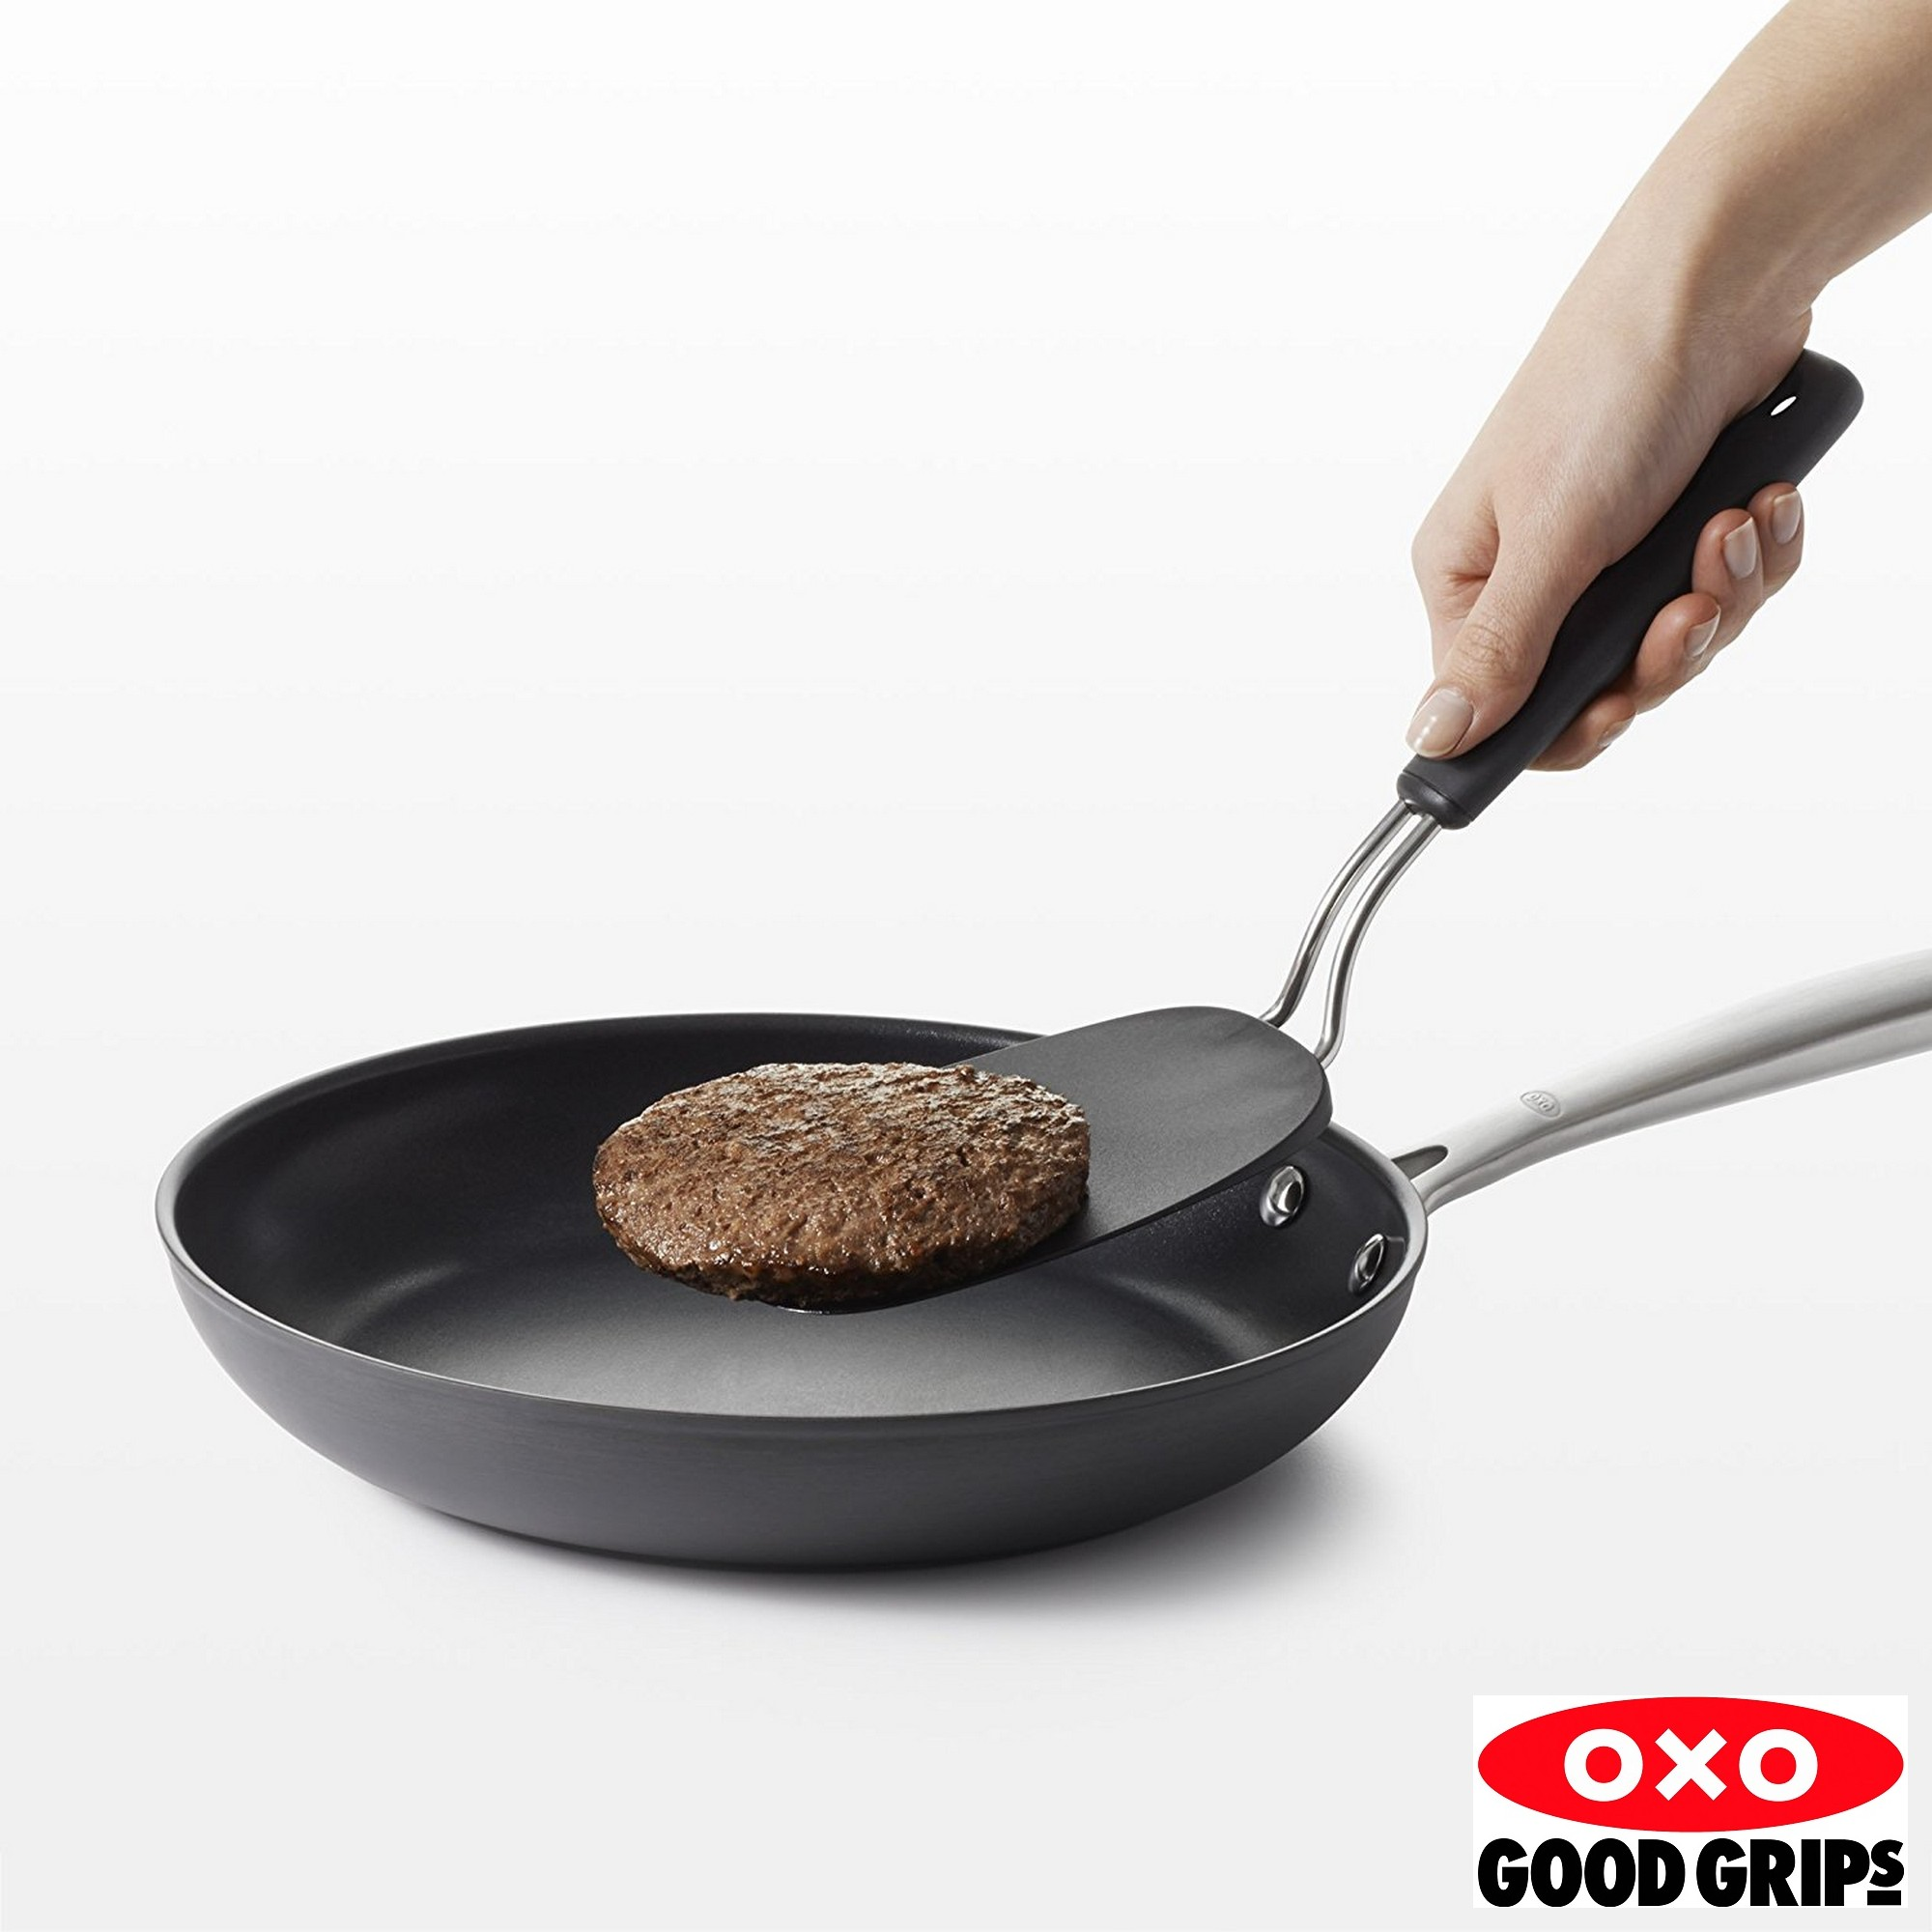 Espátula Flexível Grande Oxo Good Grips 34cm de Nylon